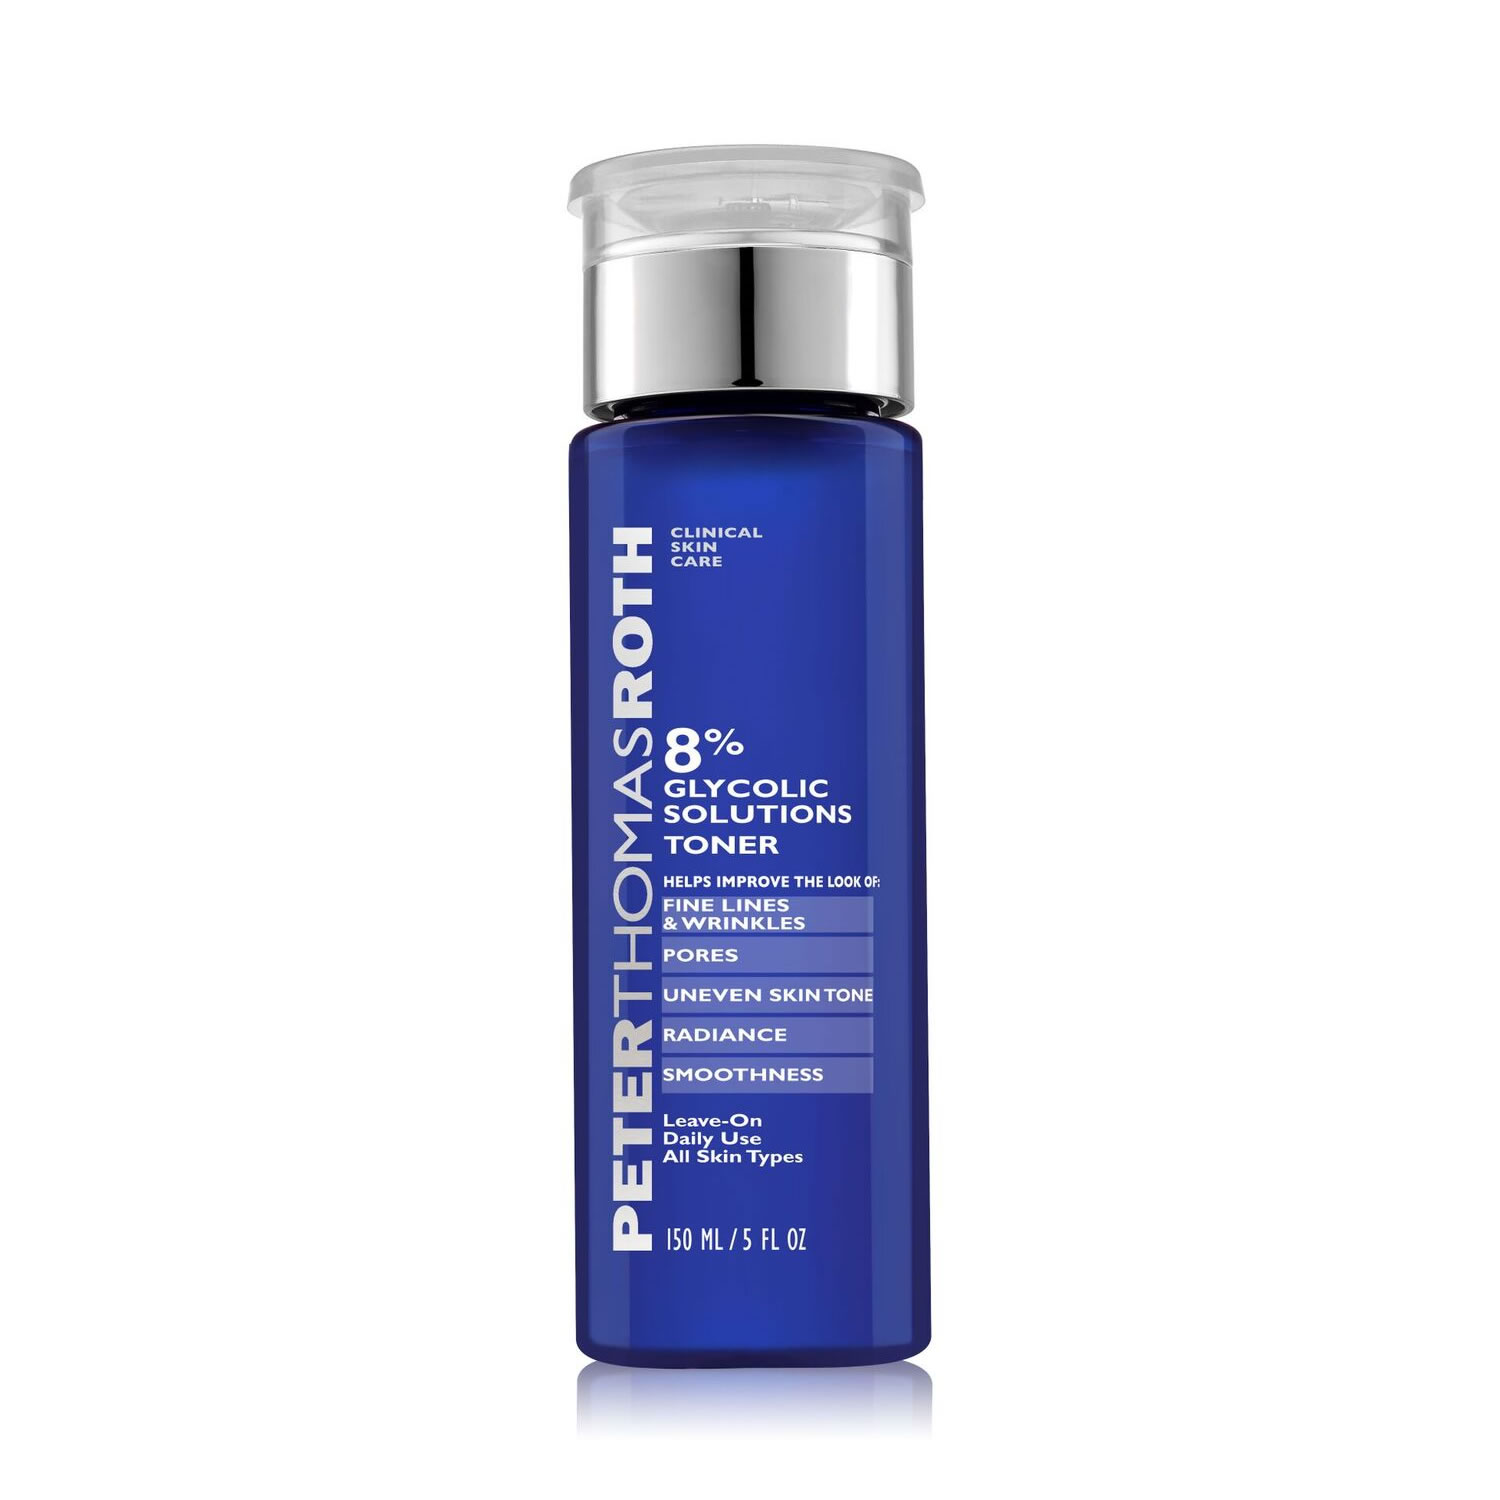 Peter Thomas Roth 8% GLYCOLIC SOLUTIONS TONER (150 ml / 5.0 fl oz)